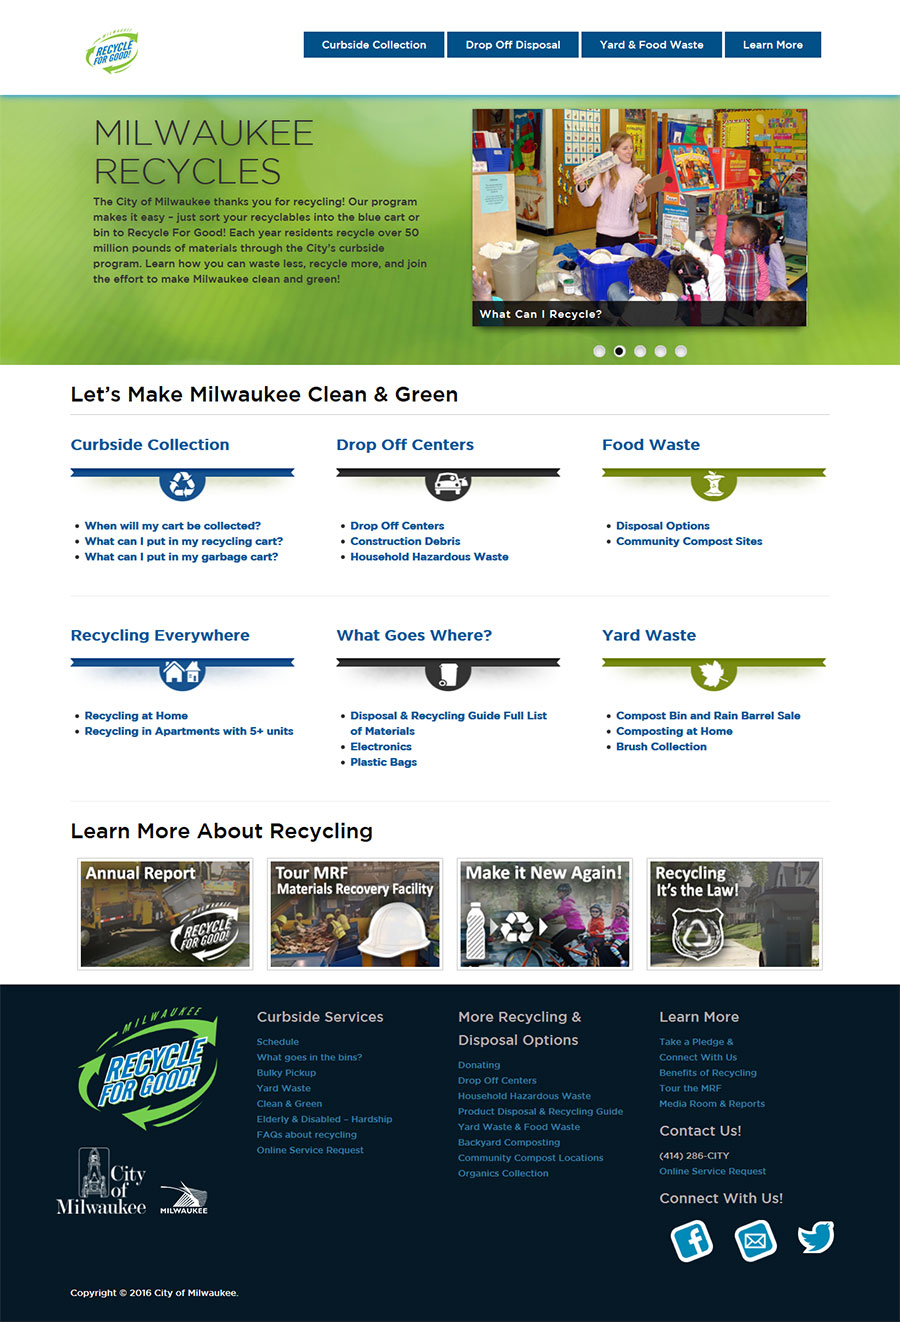 /Portfolio-Images/Milwaukee-Recycles-Homepage.png